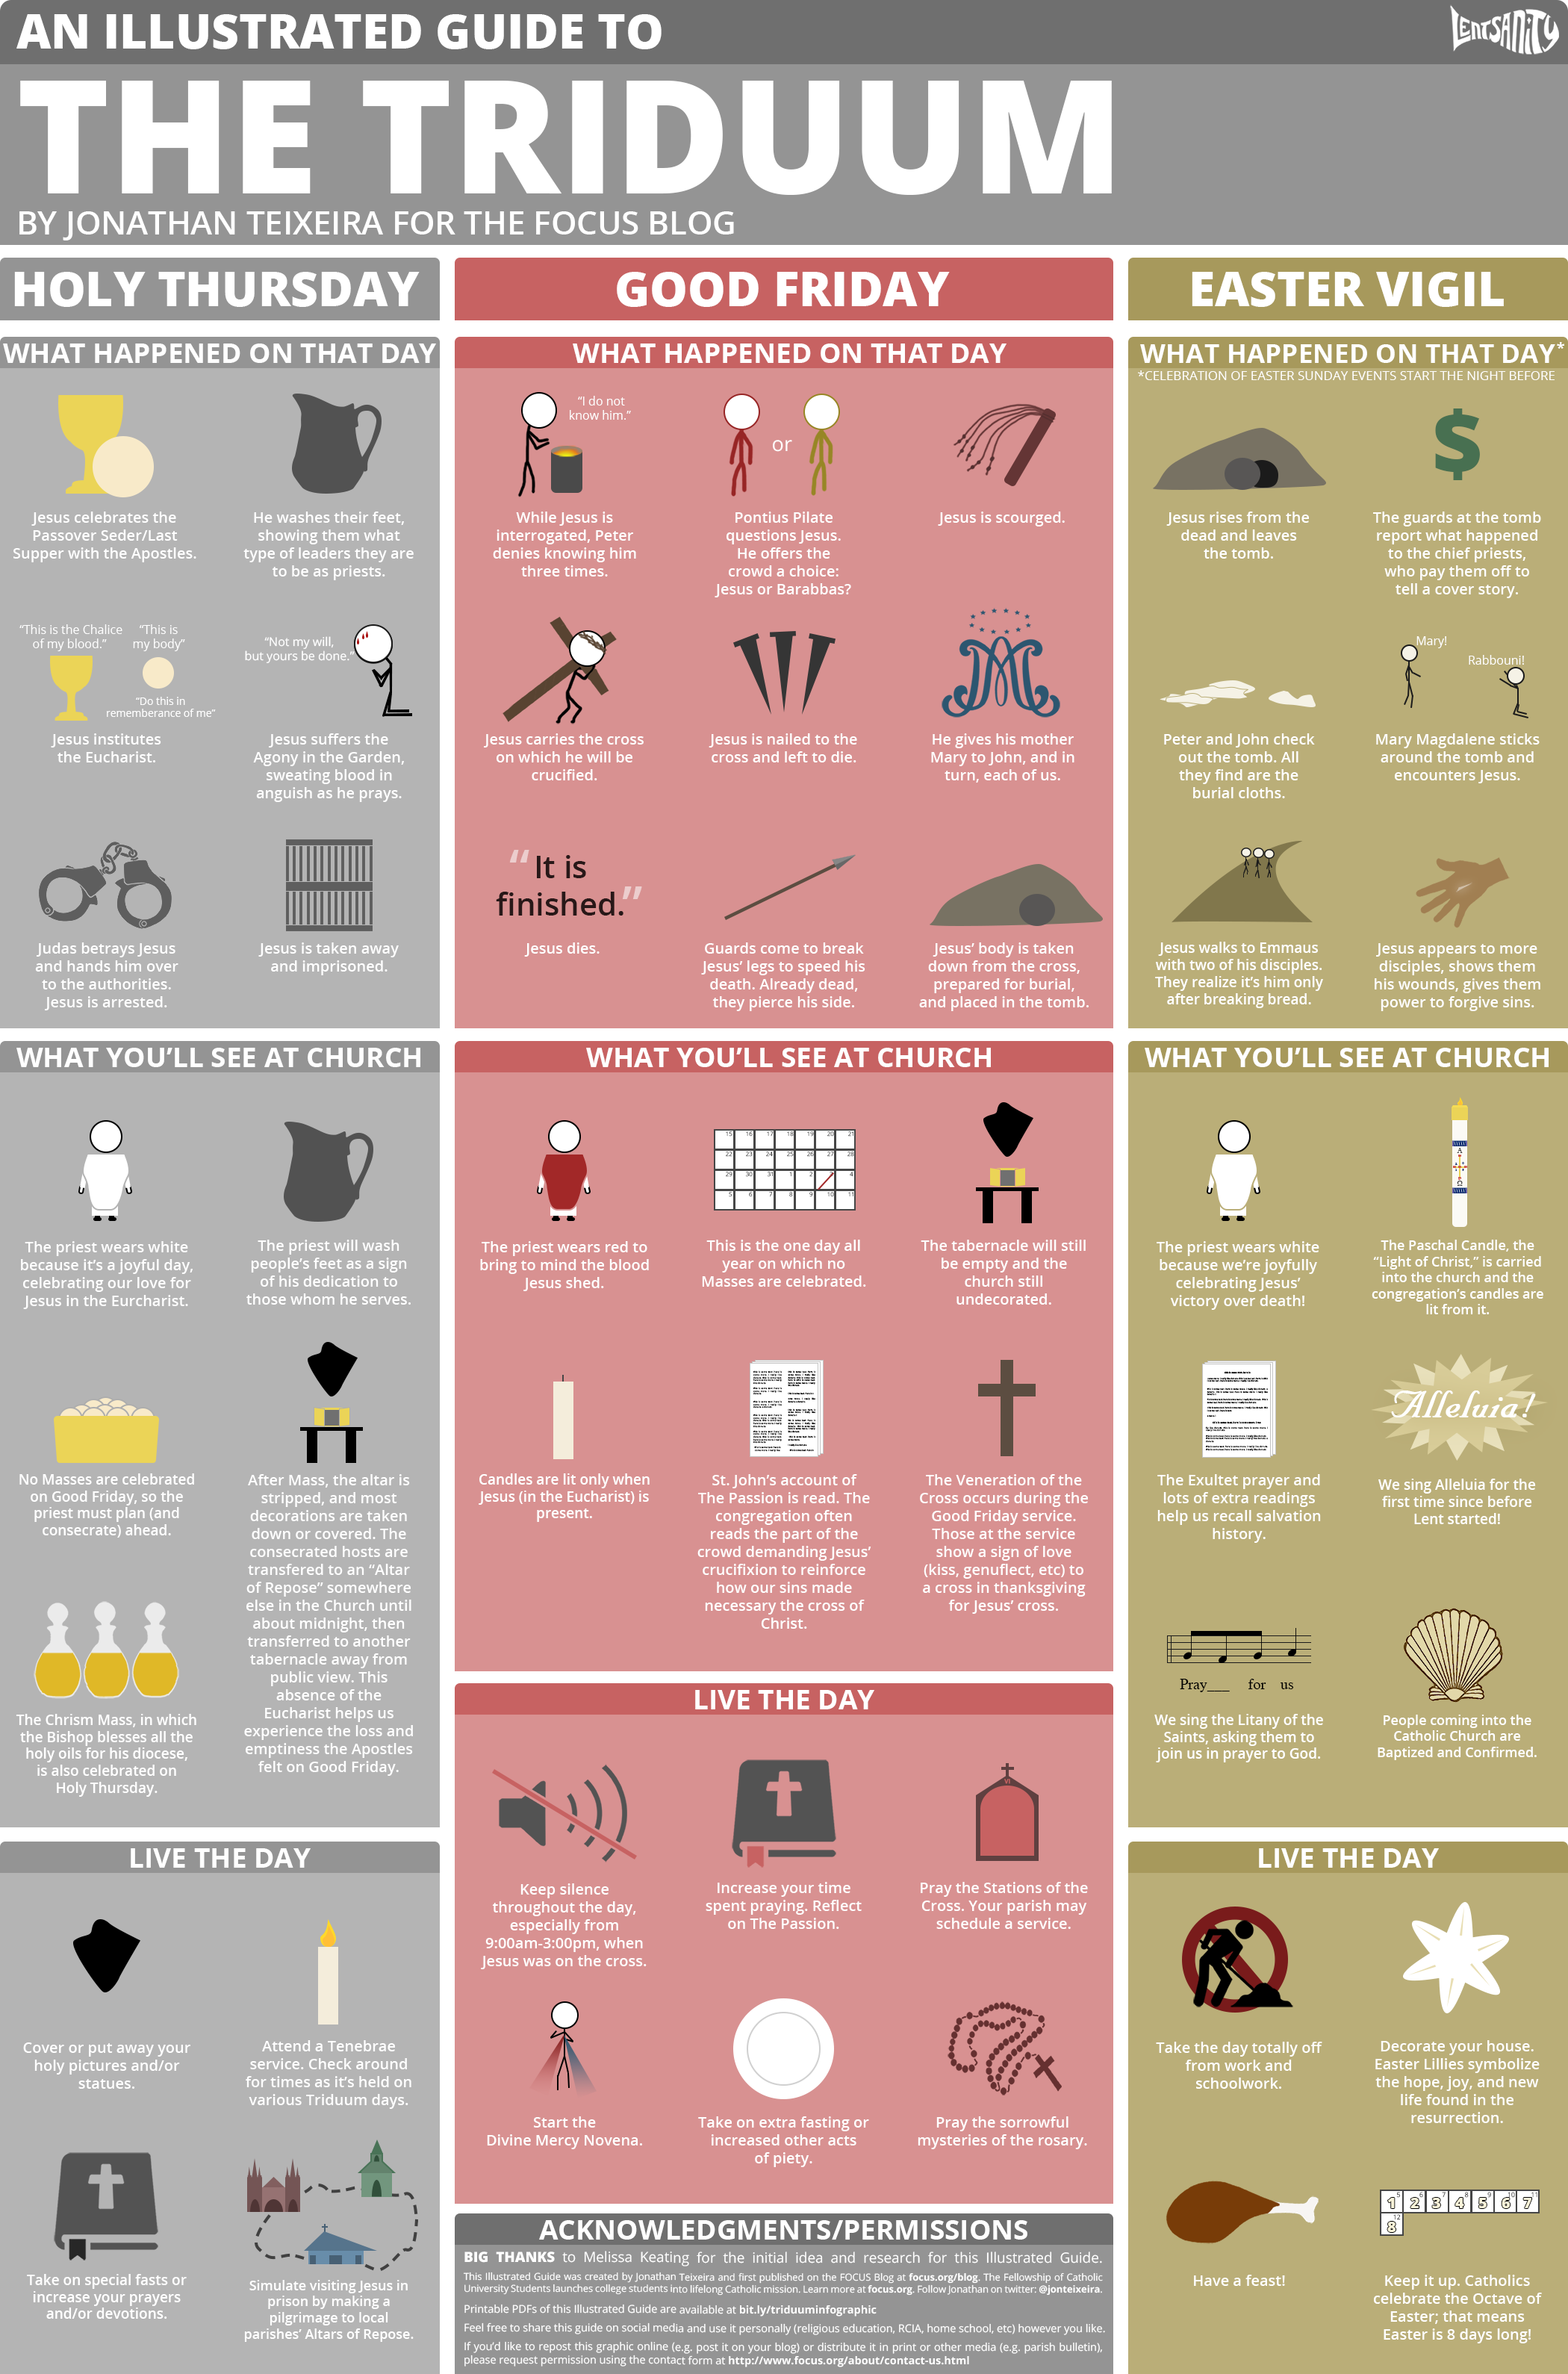 illustrated-guide-to-the-triduum-full-size.png